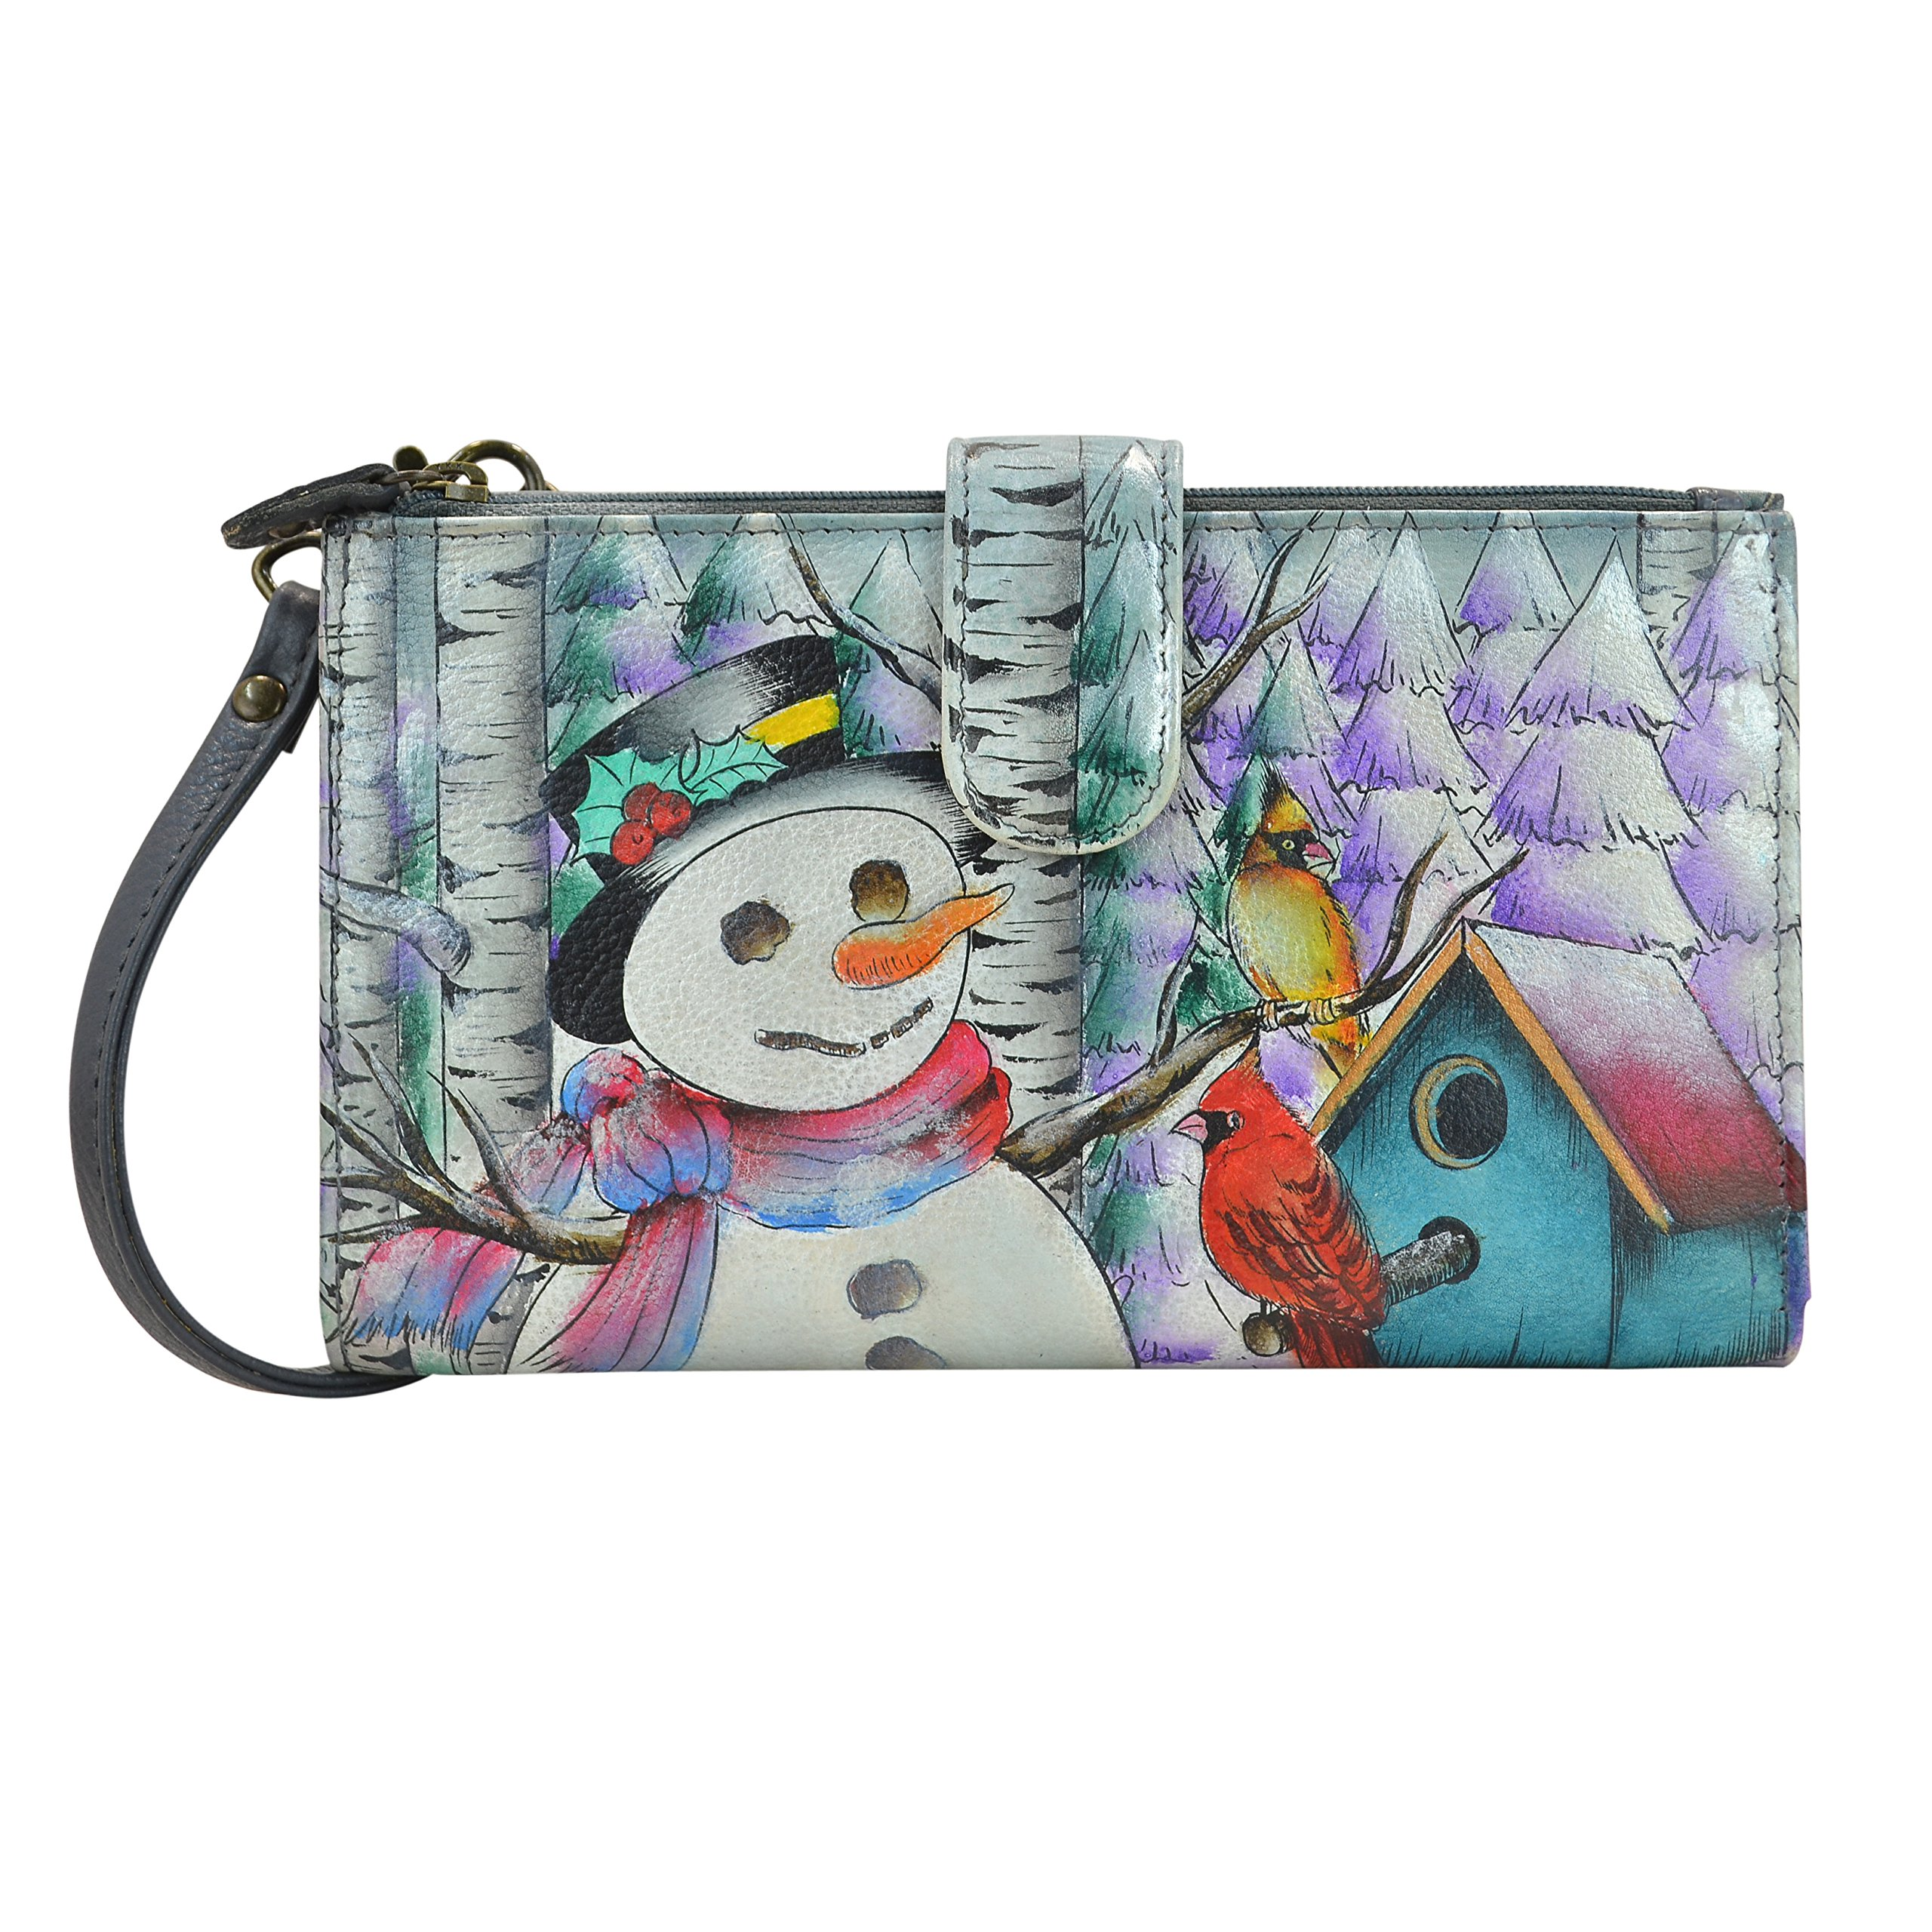 Anuschka Hand Painted Leather Large Smartphone Case & Wallet (1113 Happy Snowman) by Anna by Anuschka